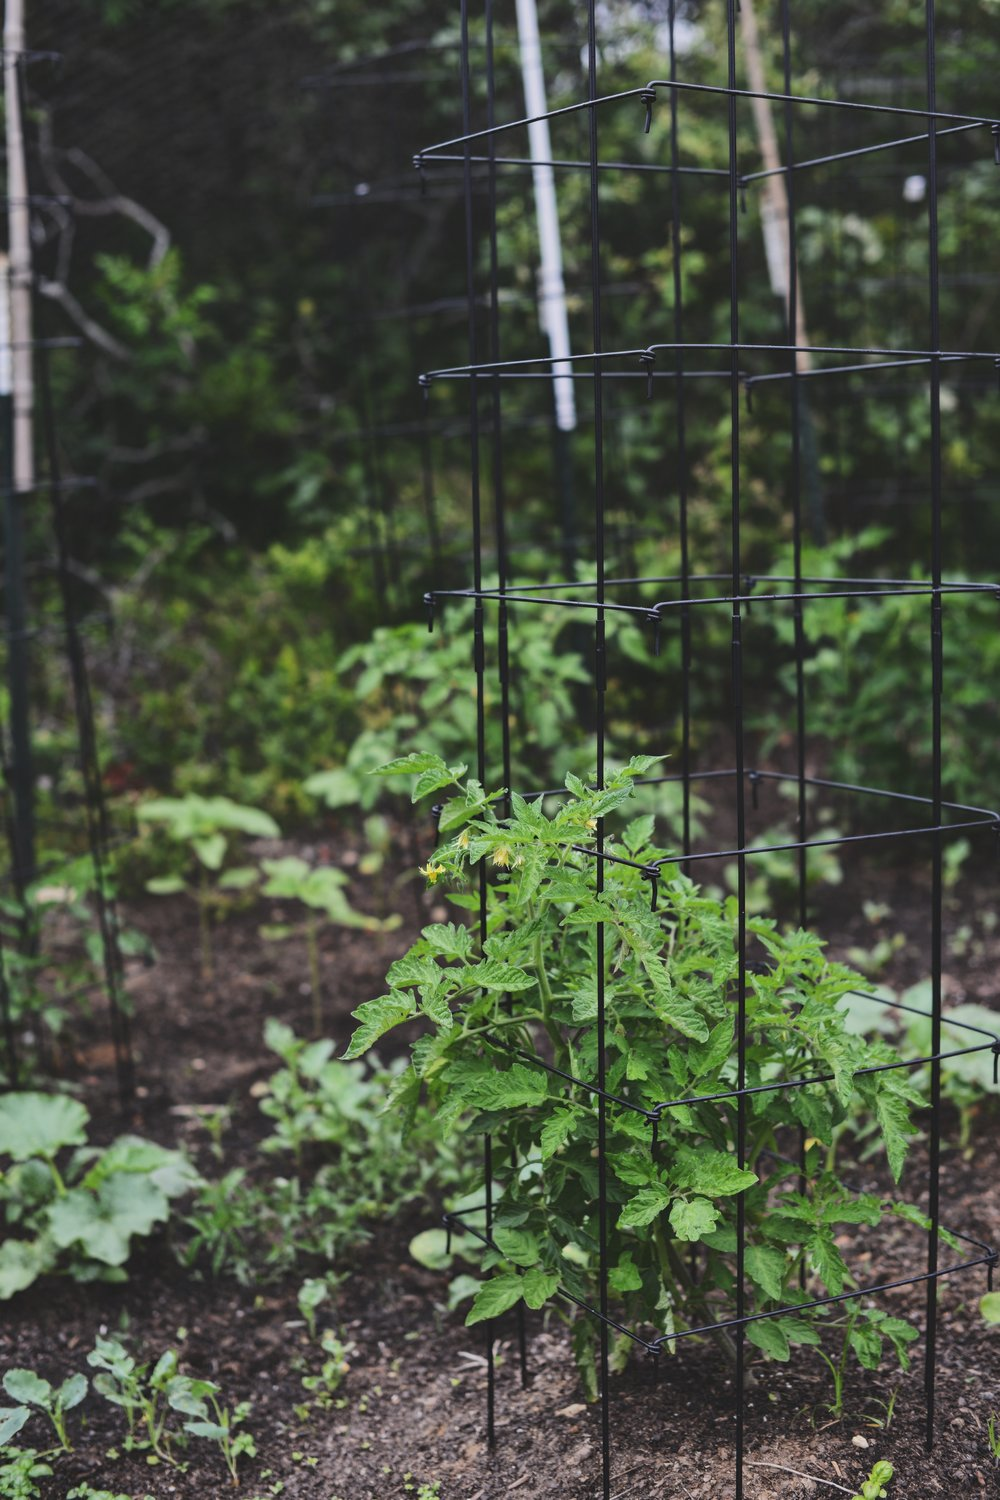 Extra Tall Tomato Tower Cages By Gardeners Supply Co.